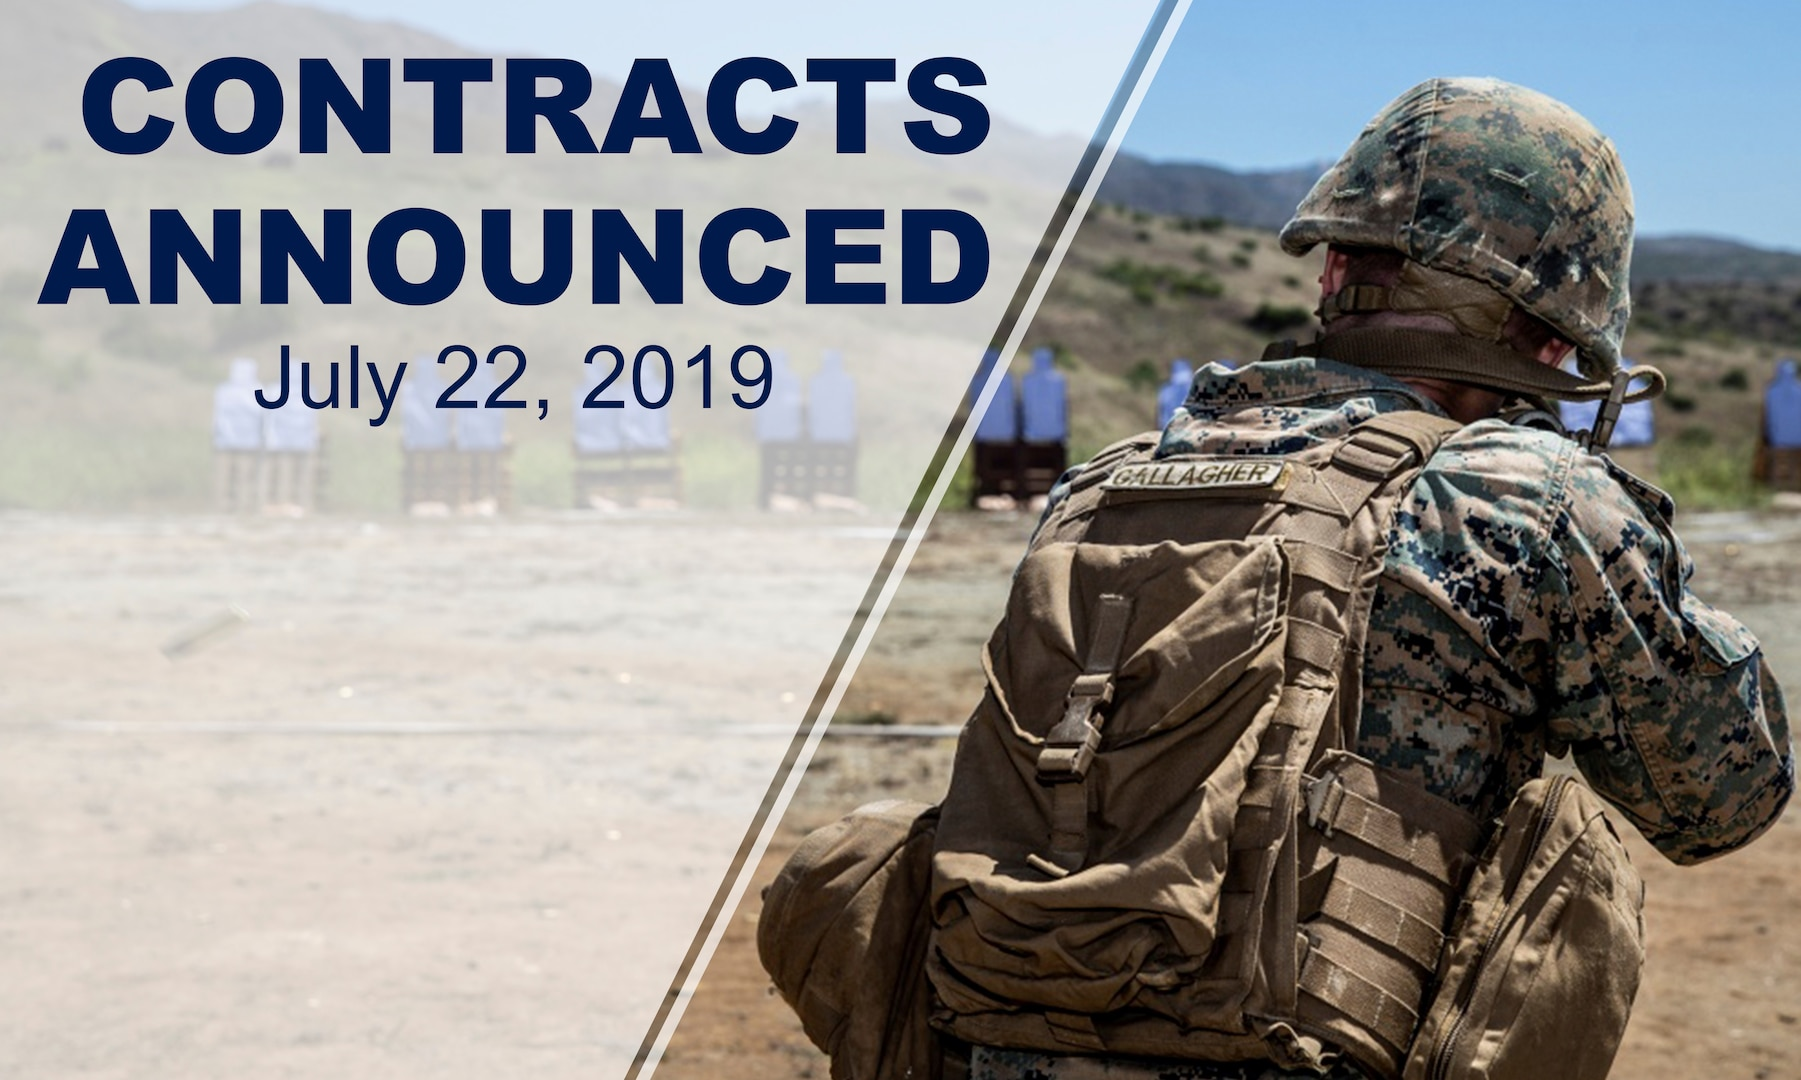 """Military personnel trains on a firing range. Text reads: """"Contracts announced July 22, 2019."""""""